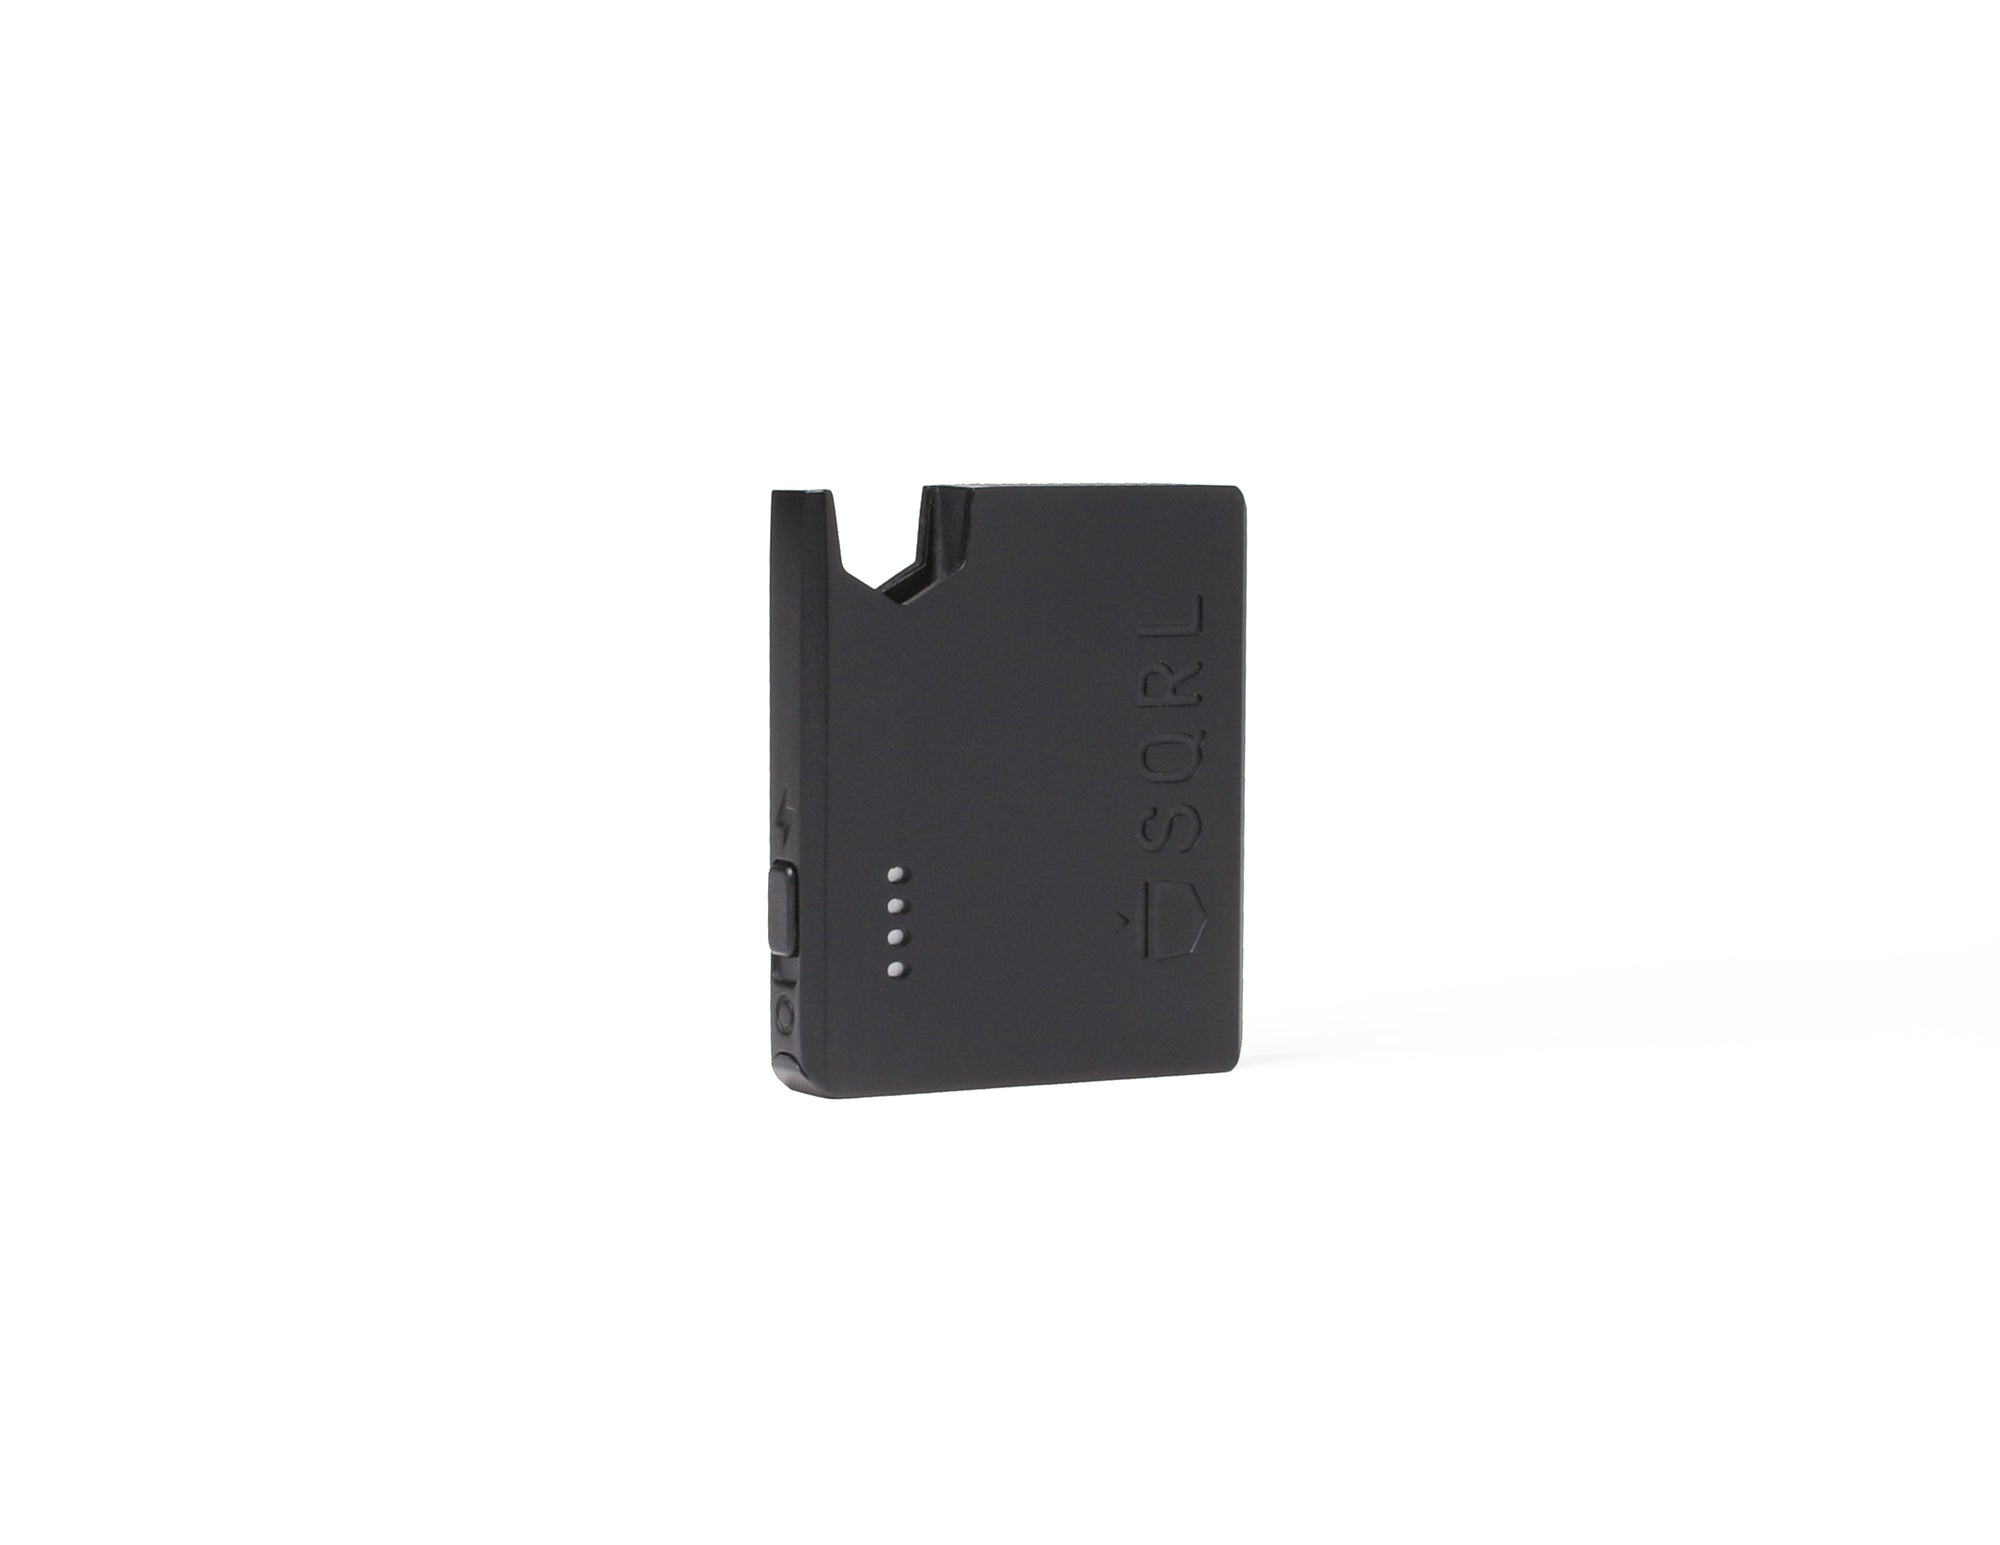 SQRL NCT Compatible Pod Device - Black